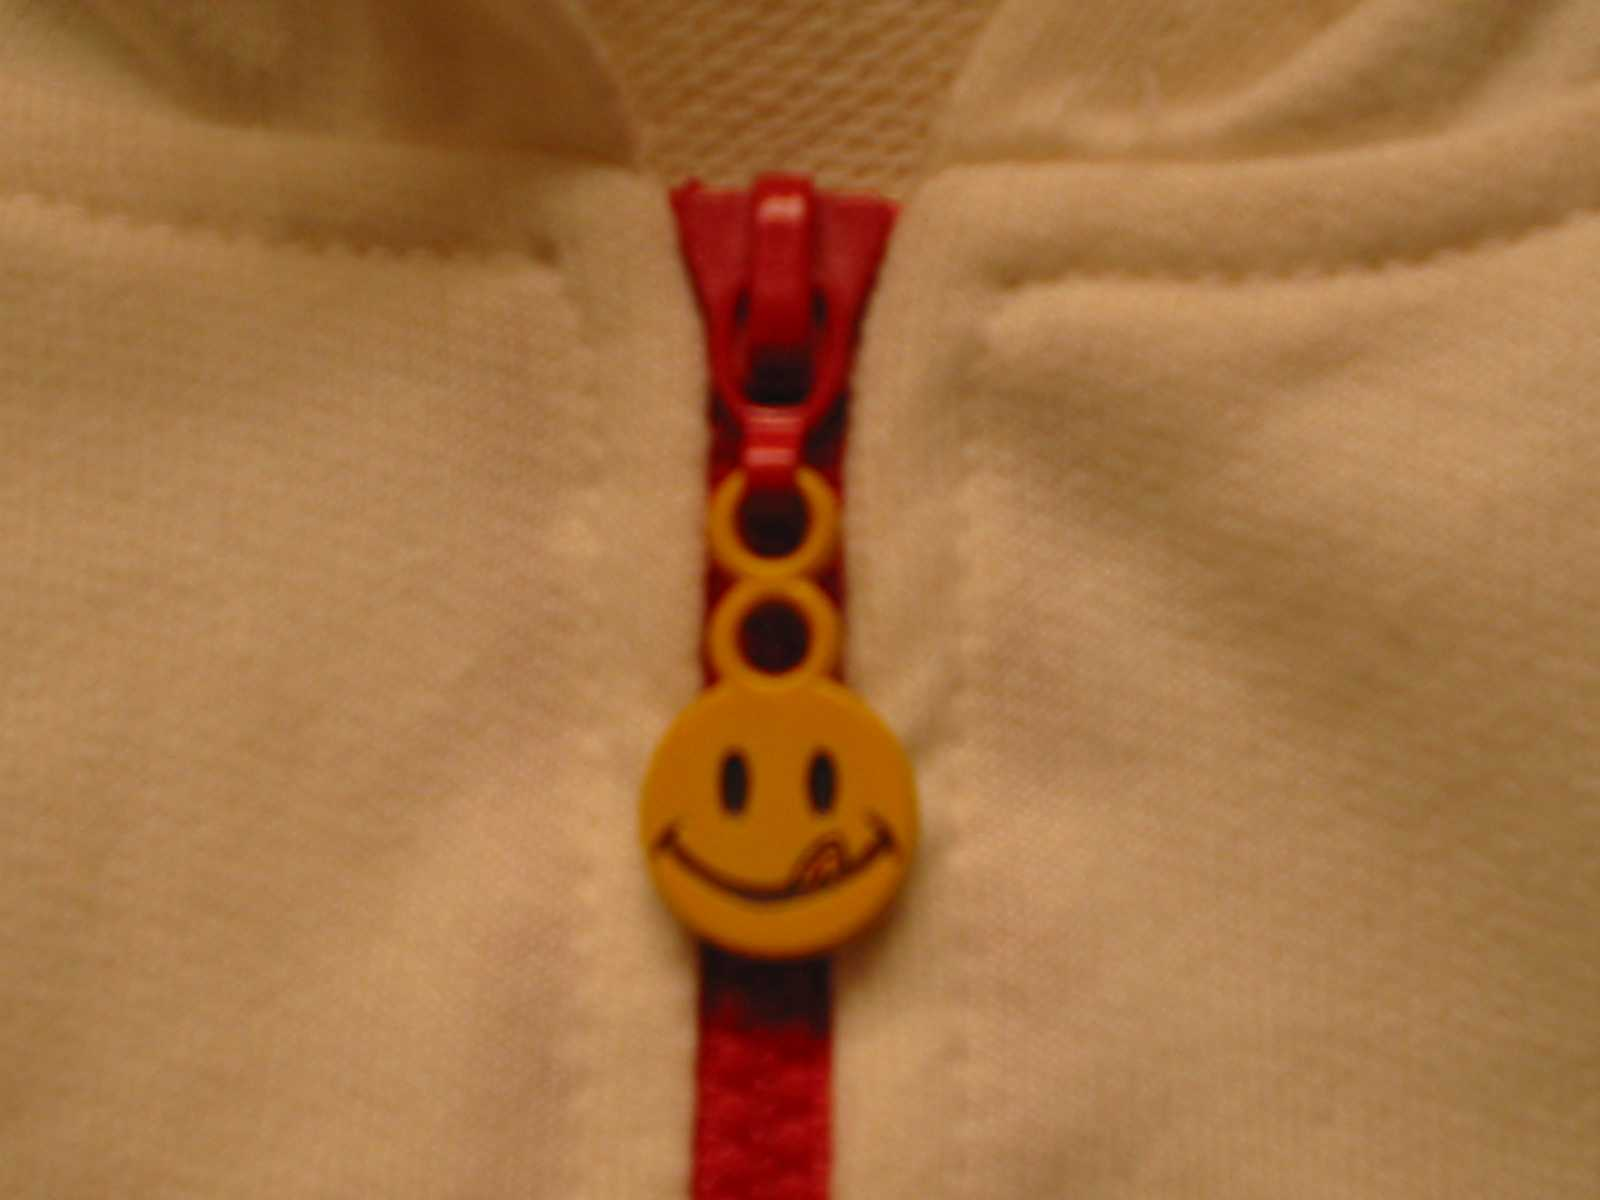 Picture of zipper pull